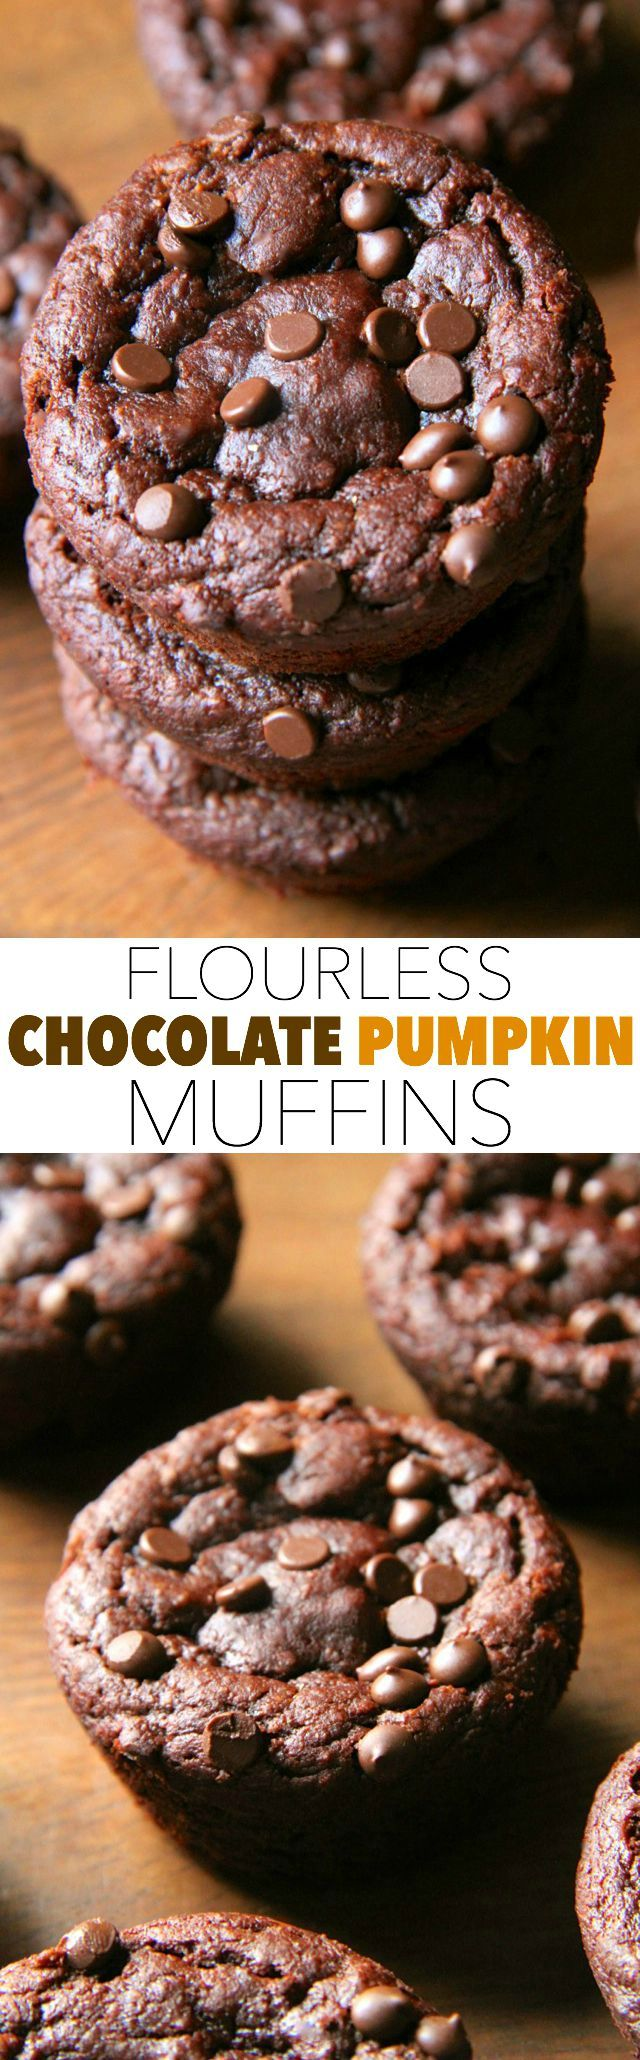 Clean Eating Chocolate Pumpkin Muffins Recipe